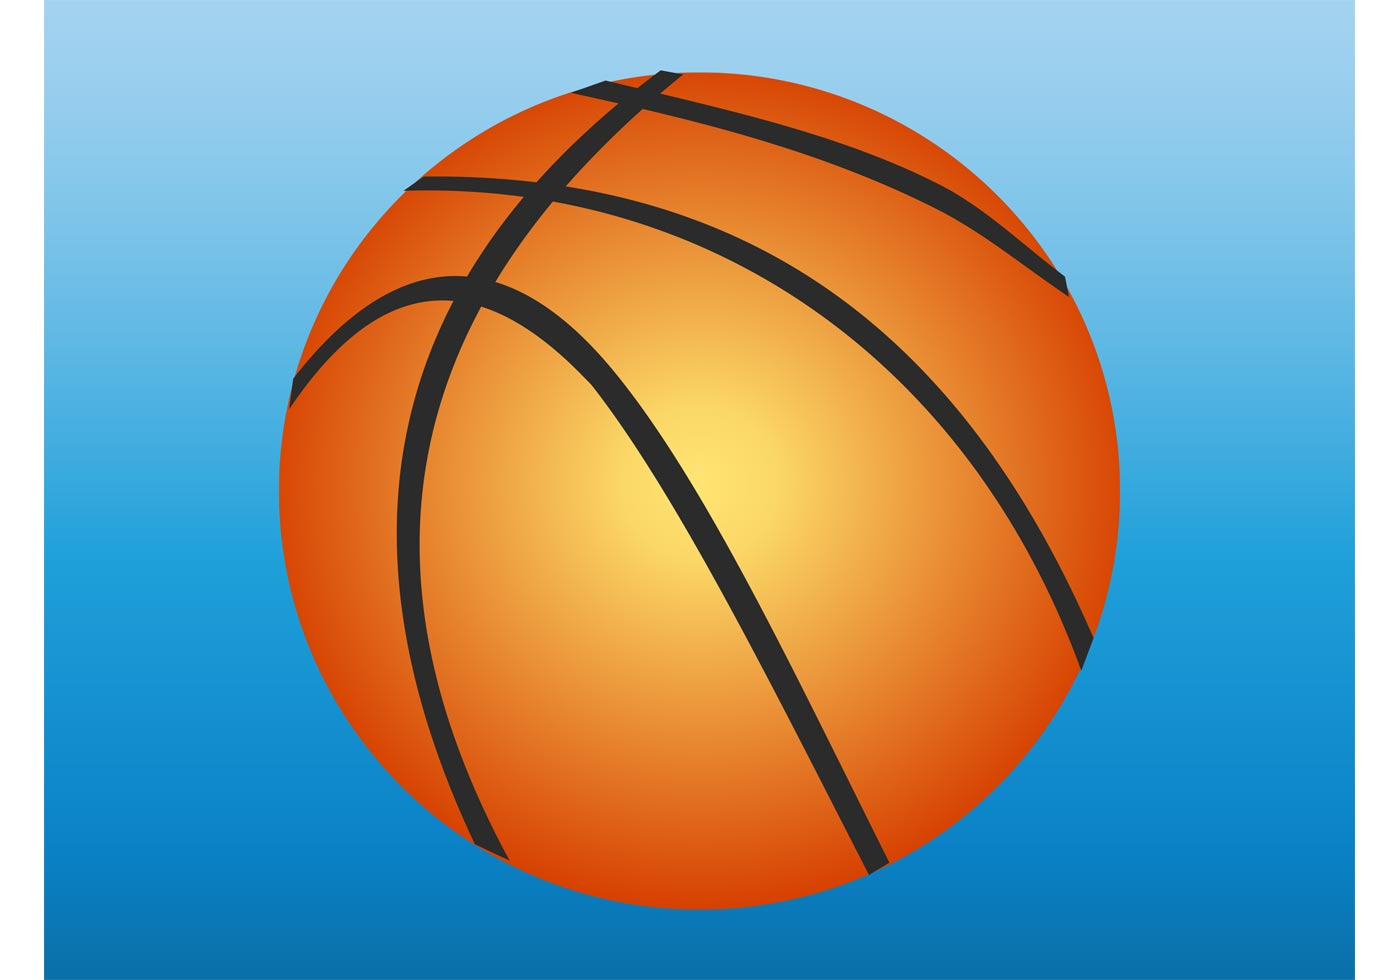 Basketball vector graphics download free vector art stock graphics images for Free basketball vector